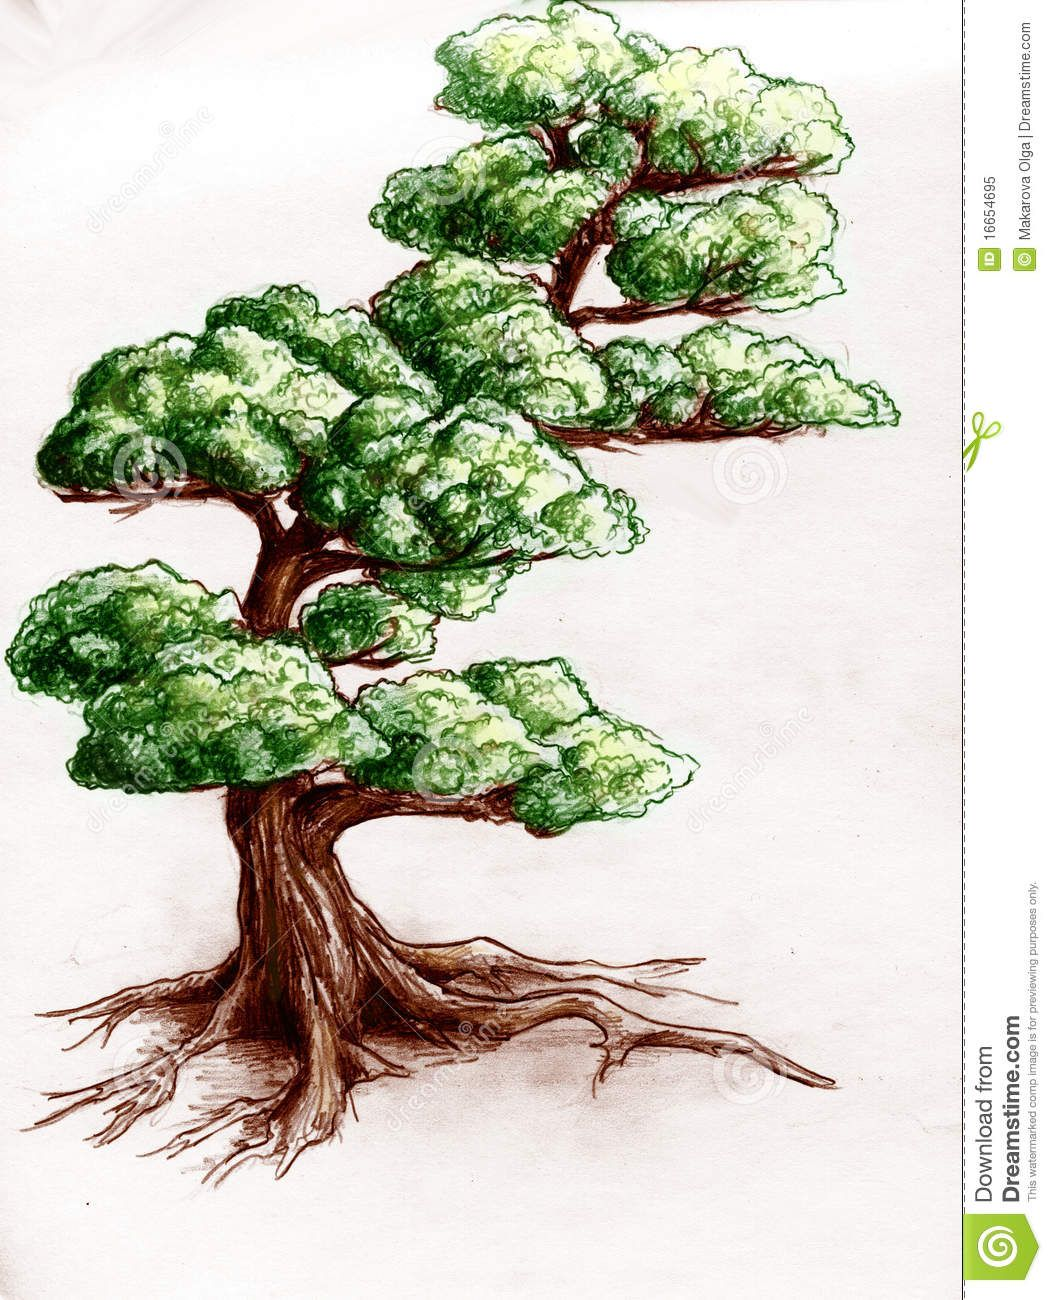 tree drawings color - Google Search | Concentration ideas ... for Tree Drawing With Color  53kxo